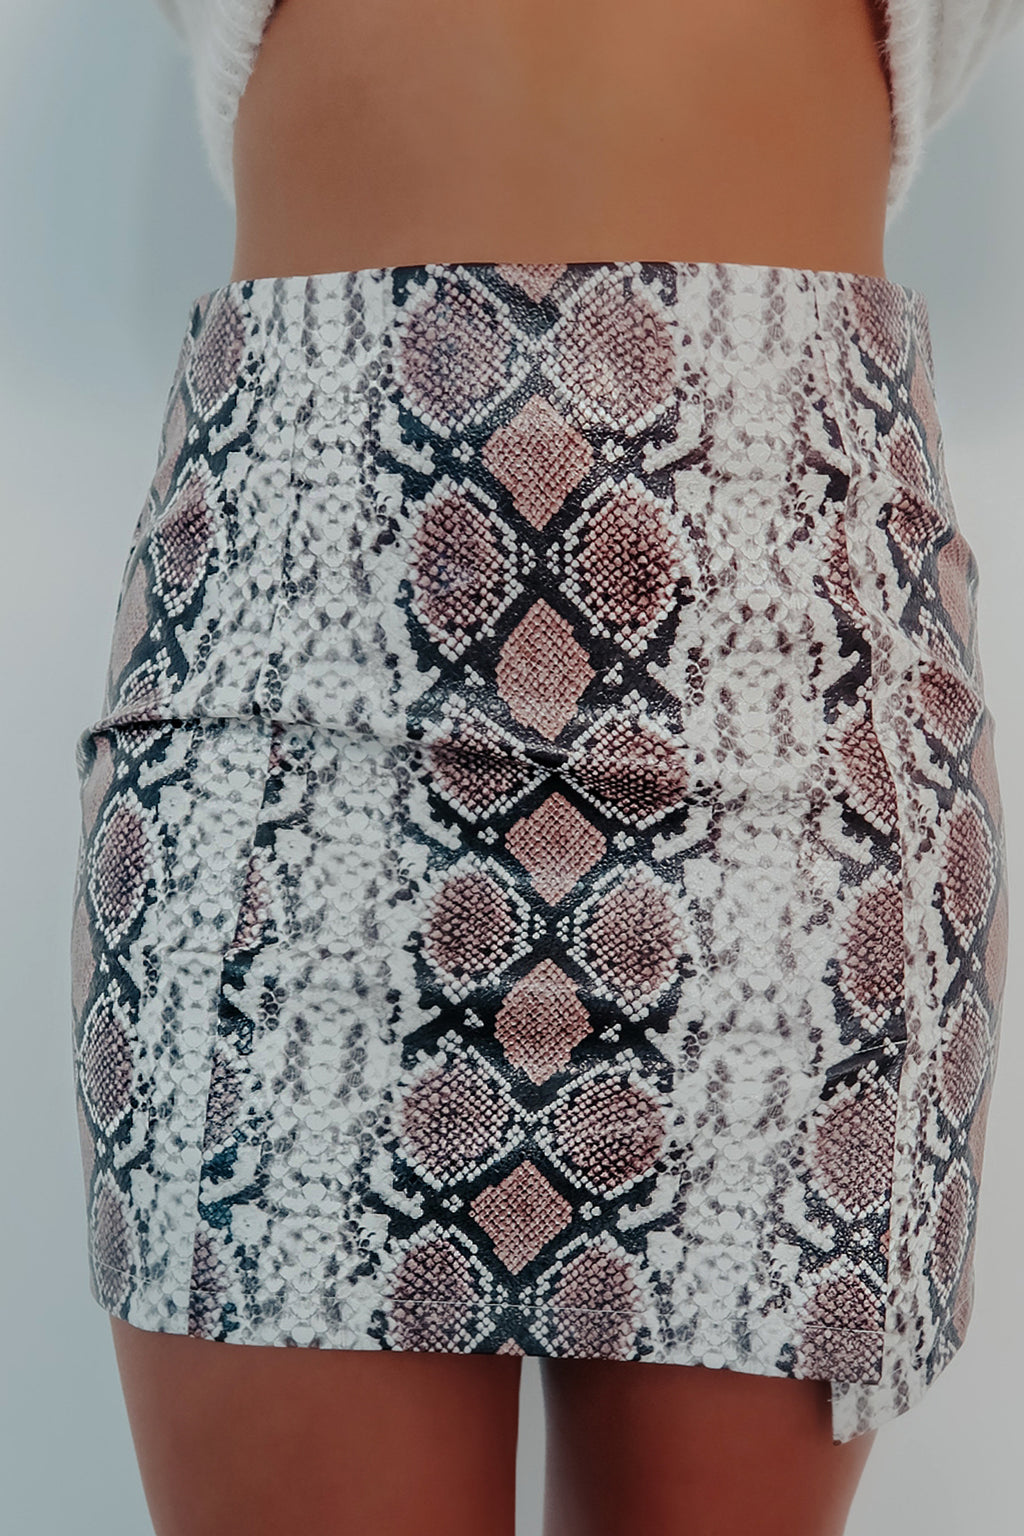 So Sneaky Skirt: Multi